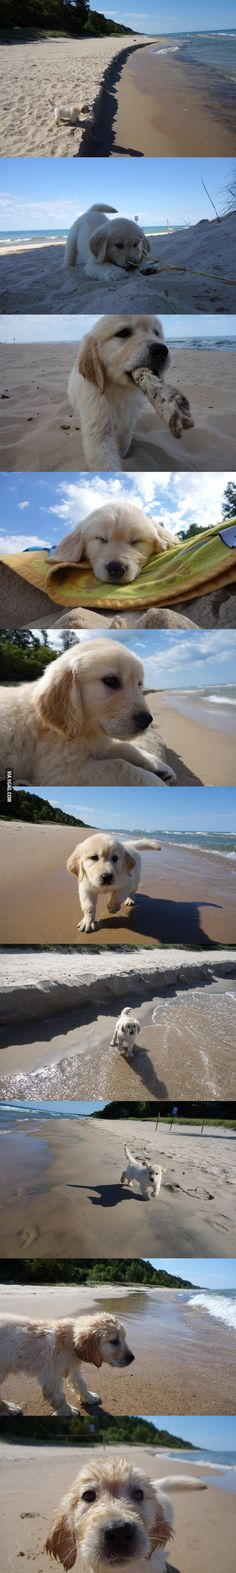 This puppy is enjoying his first trip to the beach!